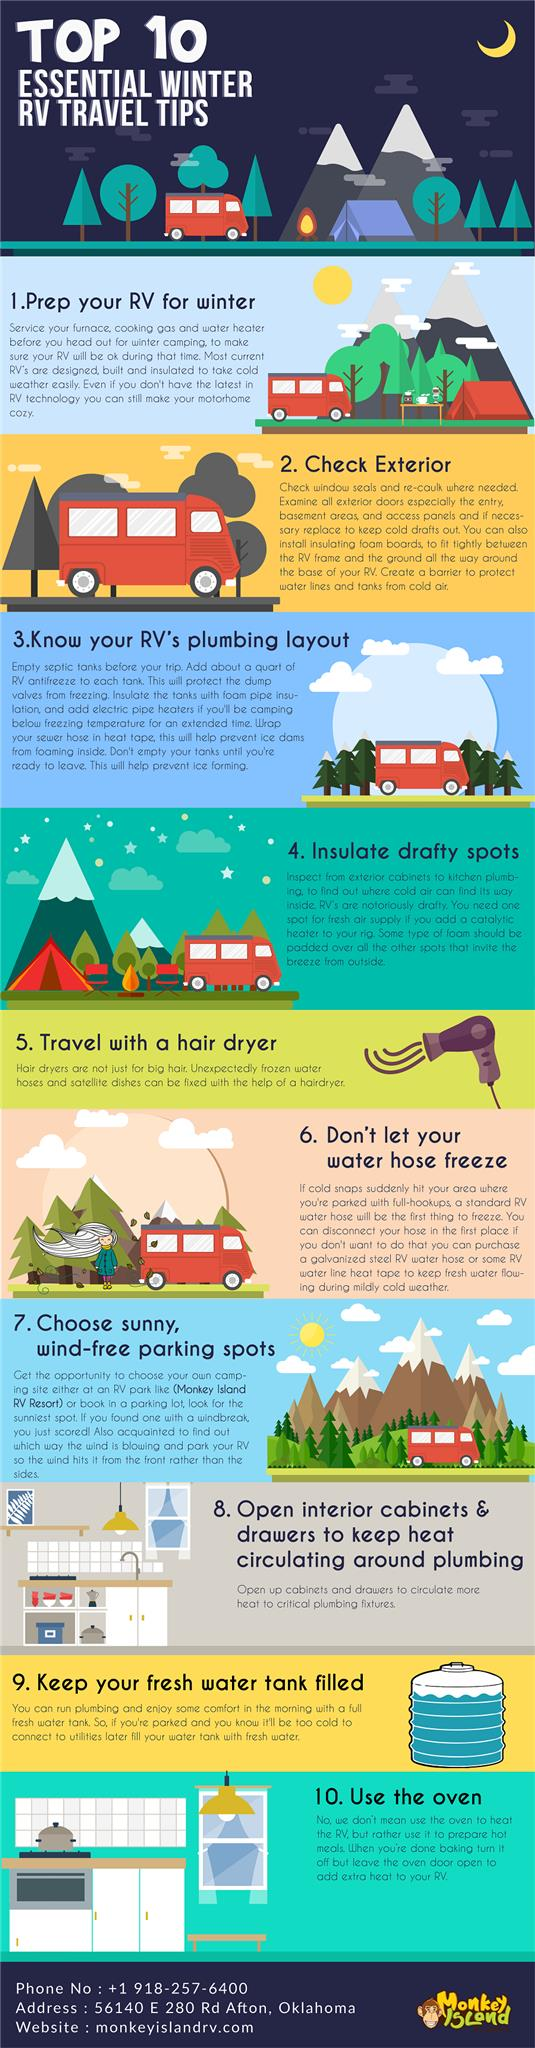 Top 10 Essential Winter RV Travel Tips.png